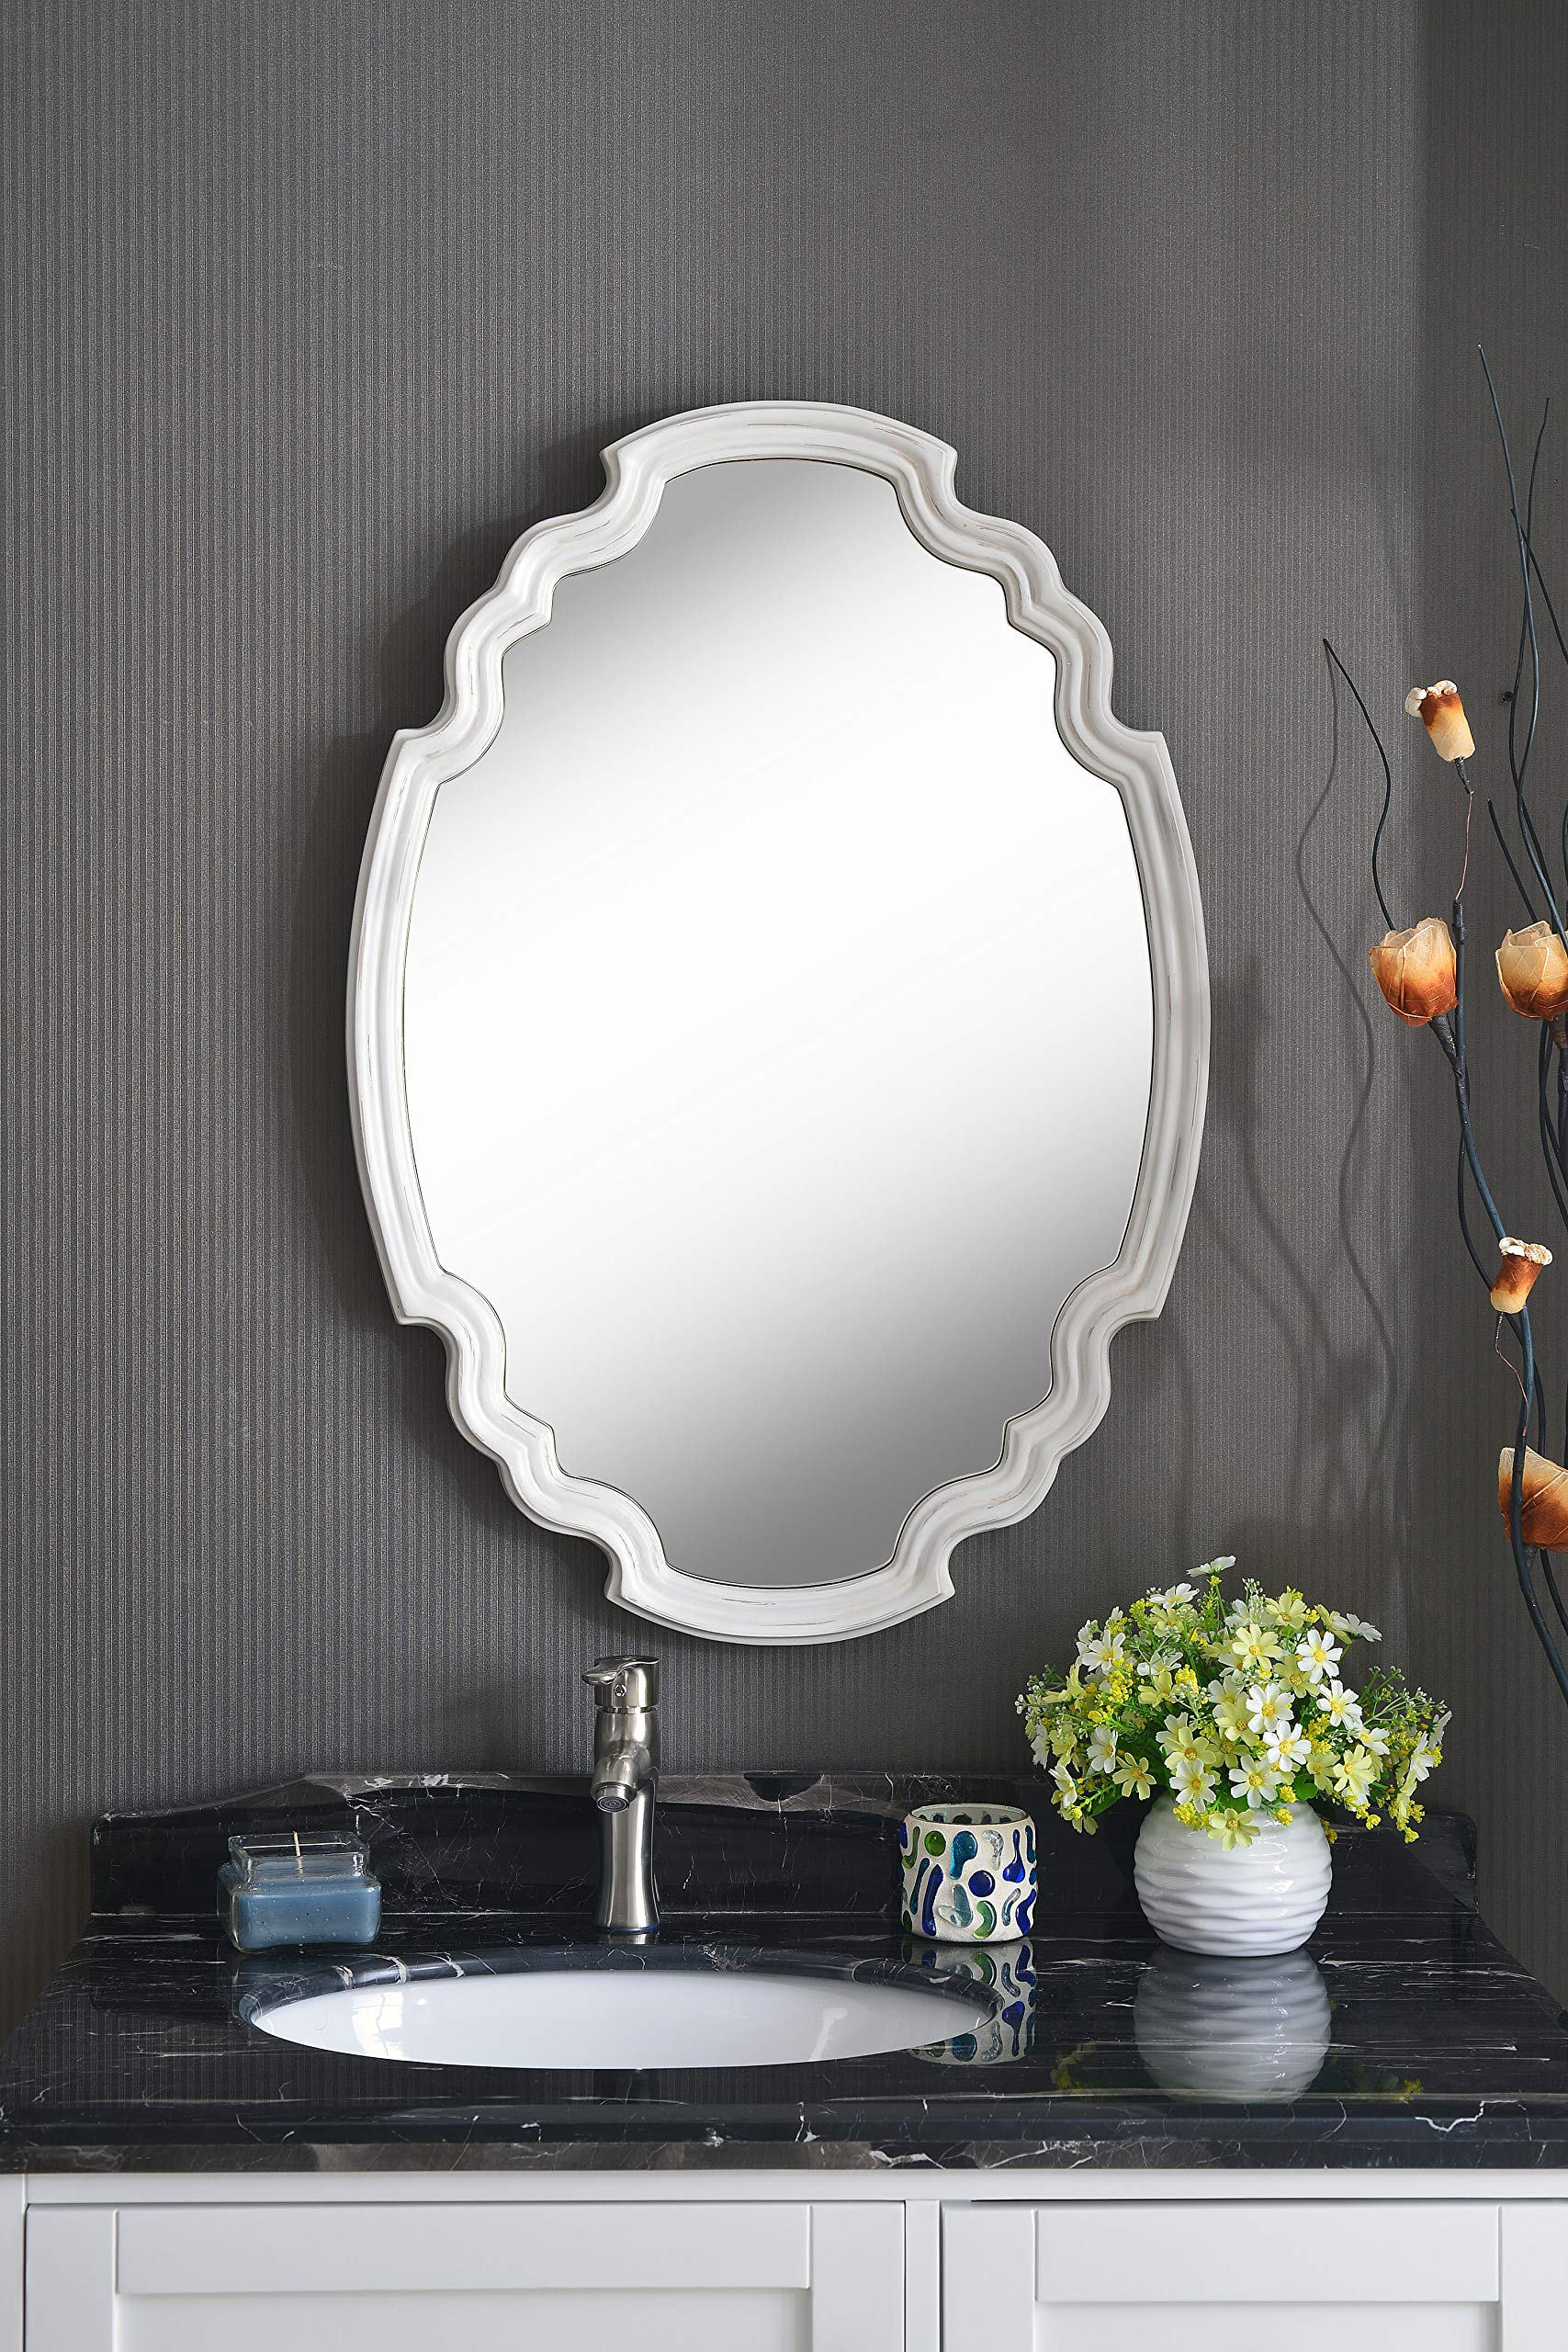 Kenroy Home Backstage Wall Mirror, White by Kenroy Home